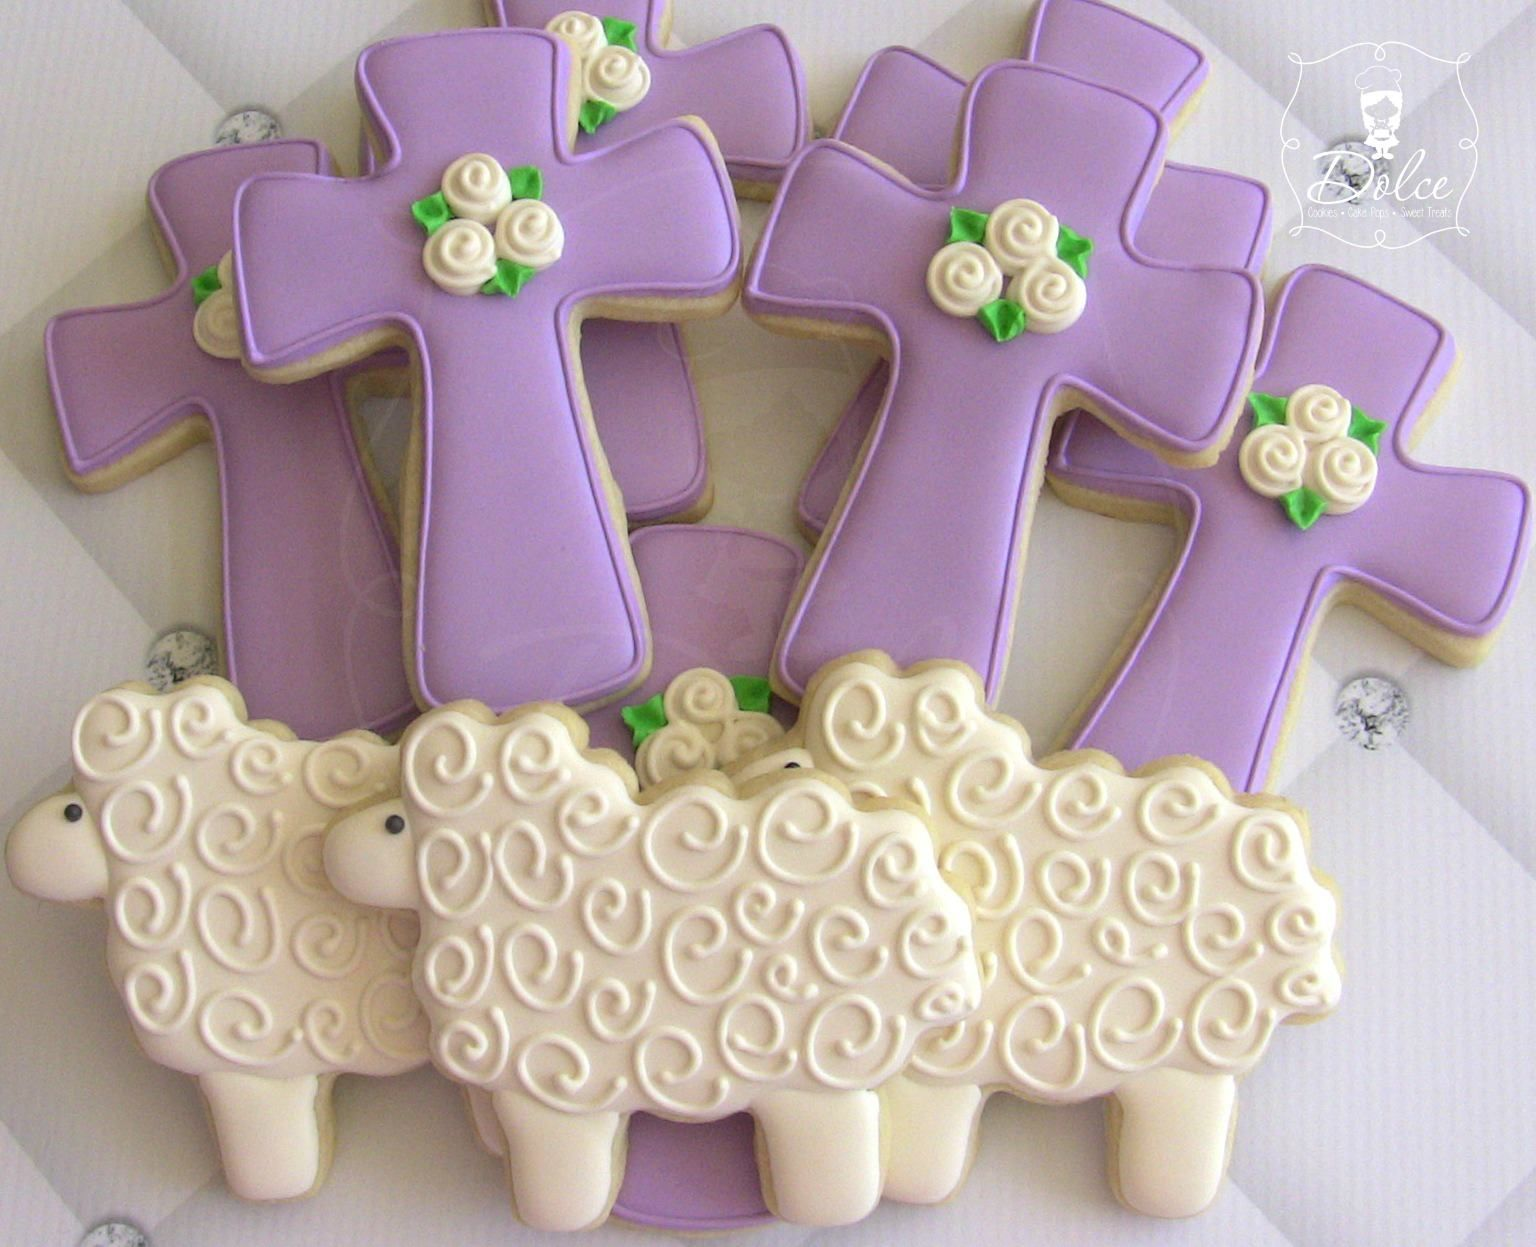 Sheep And Crosses Decorated Sugar Cookies For Easter